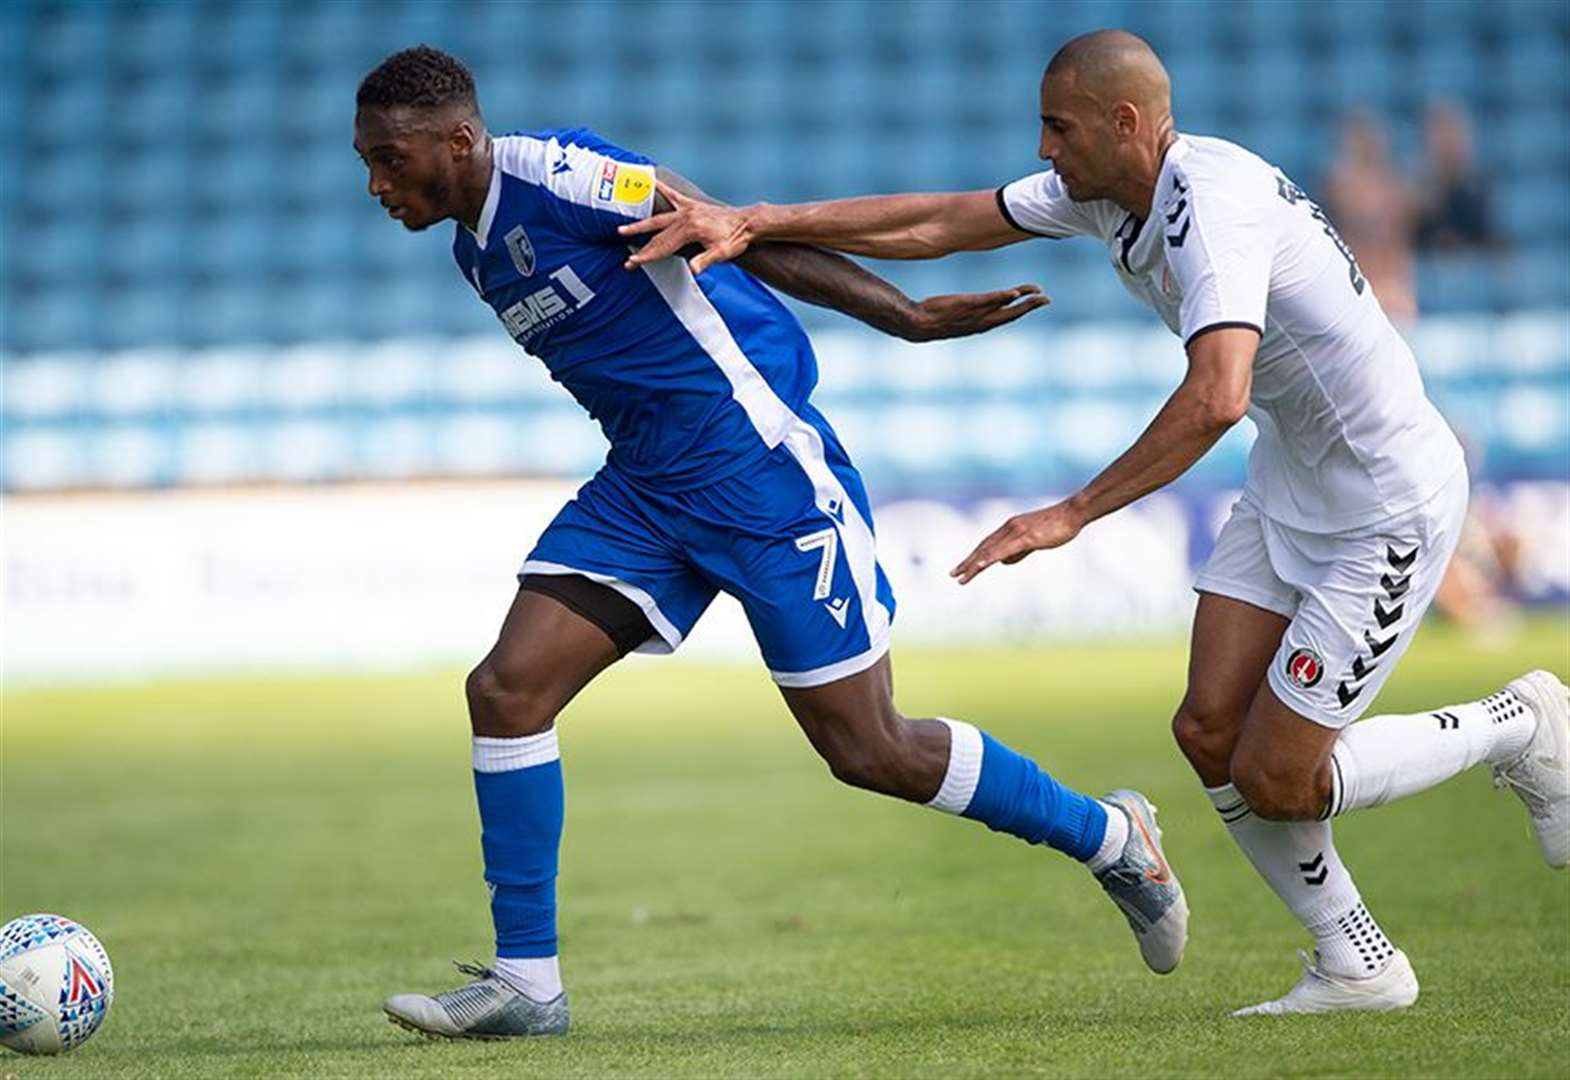 Report: Gills pass Addicks test